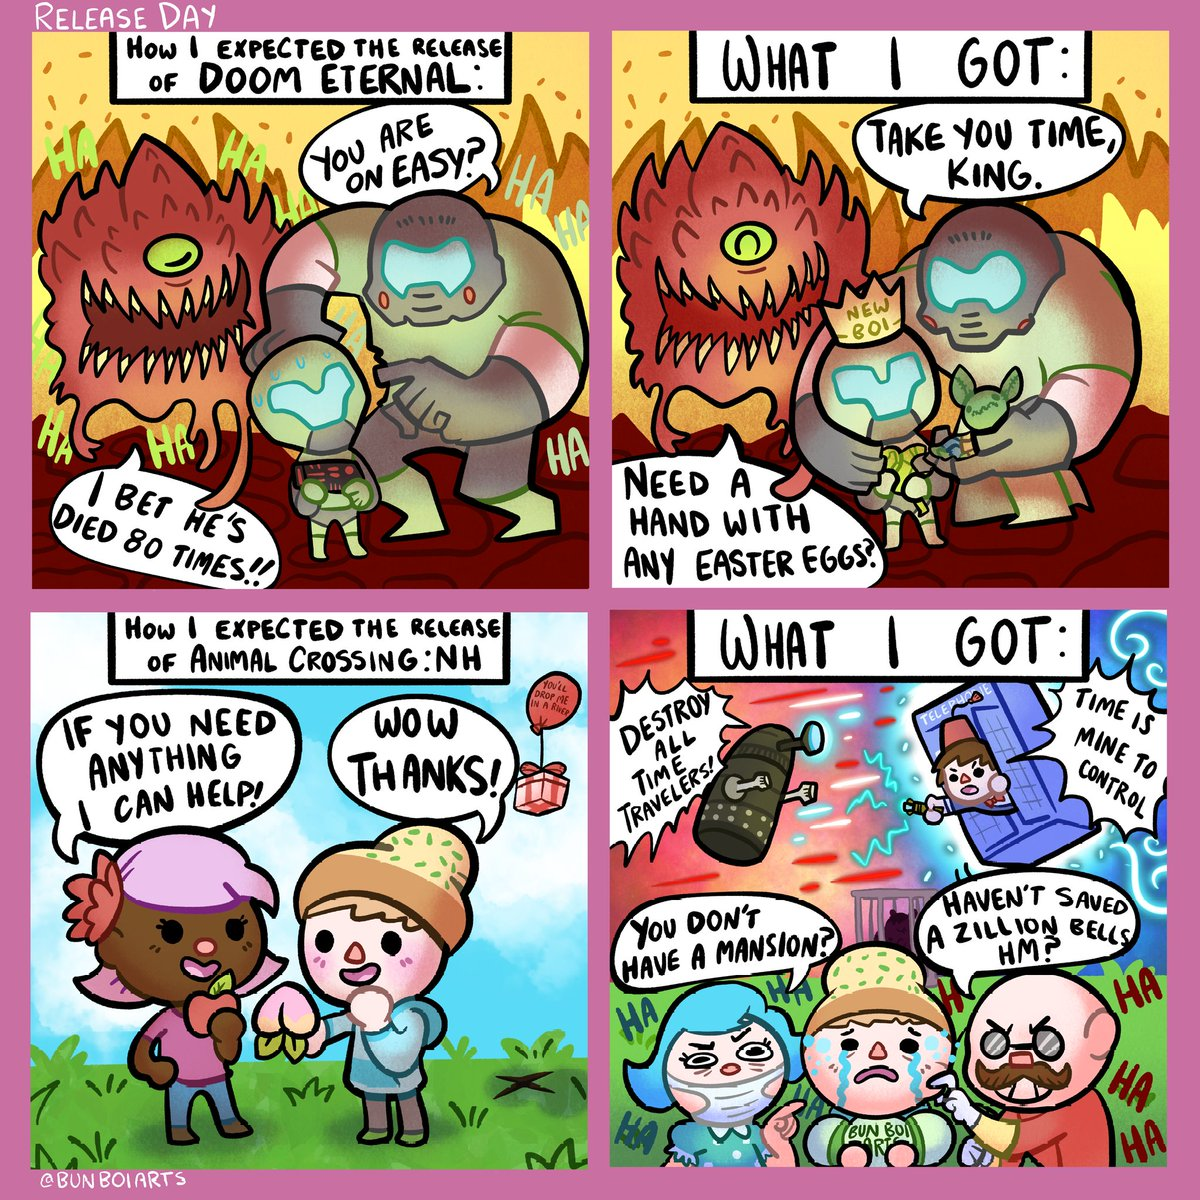 The release of Doom Eternal was pretty wild… but the release of Animal Crossing was insane. Tbh the saltiness was hilarious tho.   #Acnh #AnimalCrossing #DoomEternal #Doom #game #nintendo #switch #comic  This comic was inspired by @shenanigansenpic.twitter.com/5wbZykwcJG